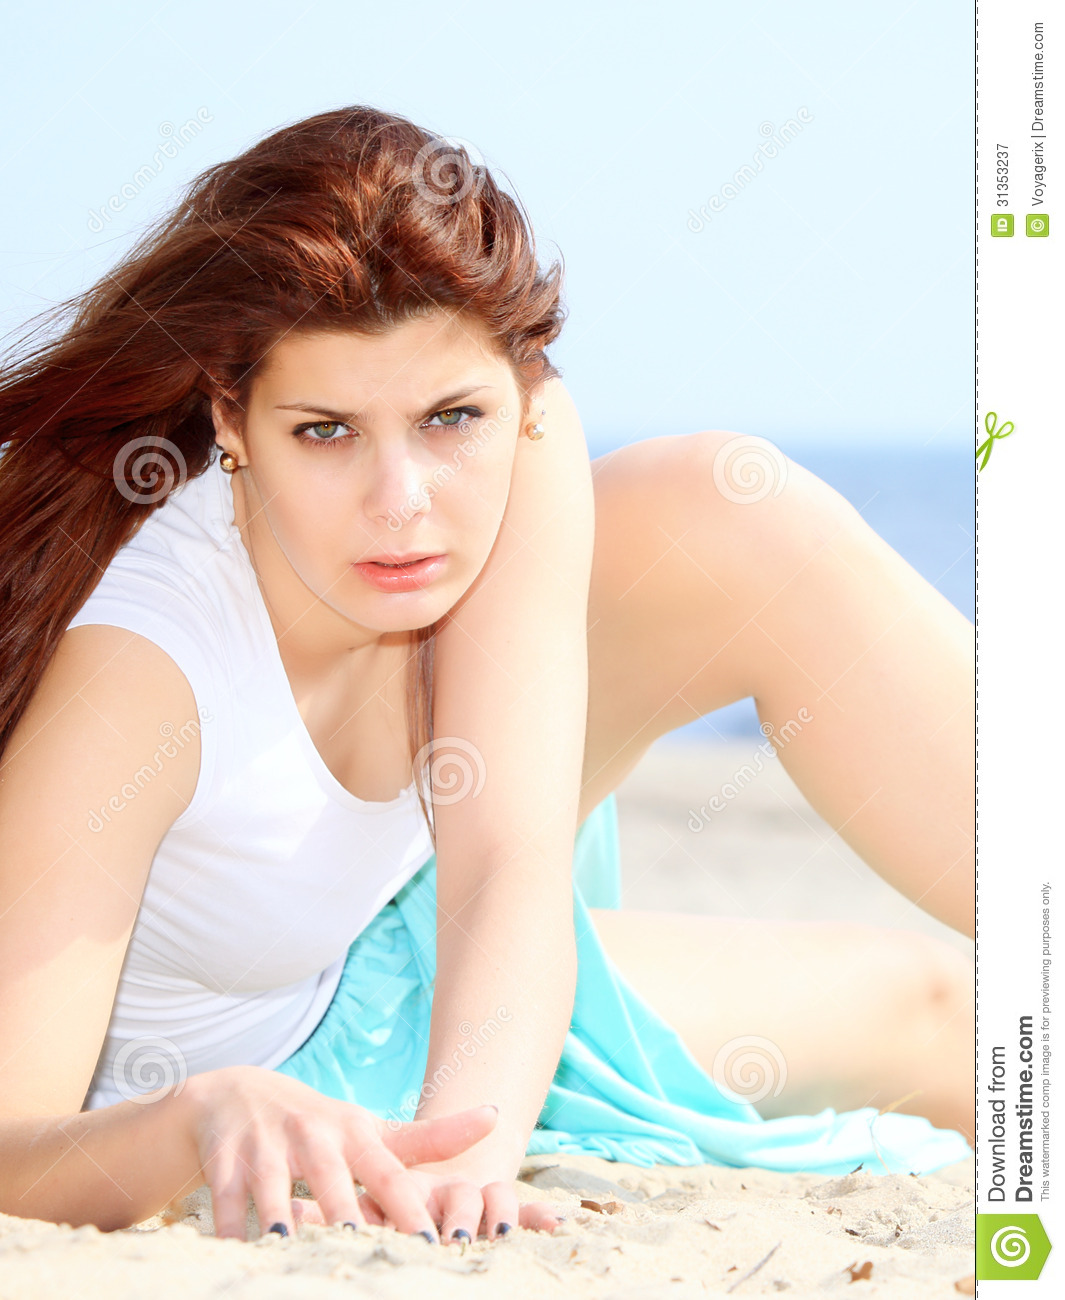 Woman Enjoying At Beach Stock Image Image Of Pleasure: Young Woman On Beach Summer Holiday Stock Image